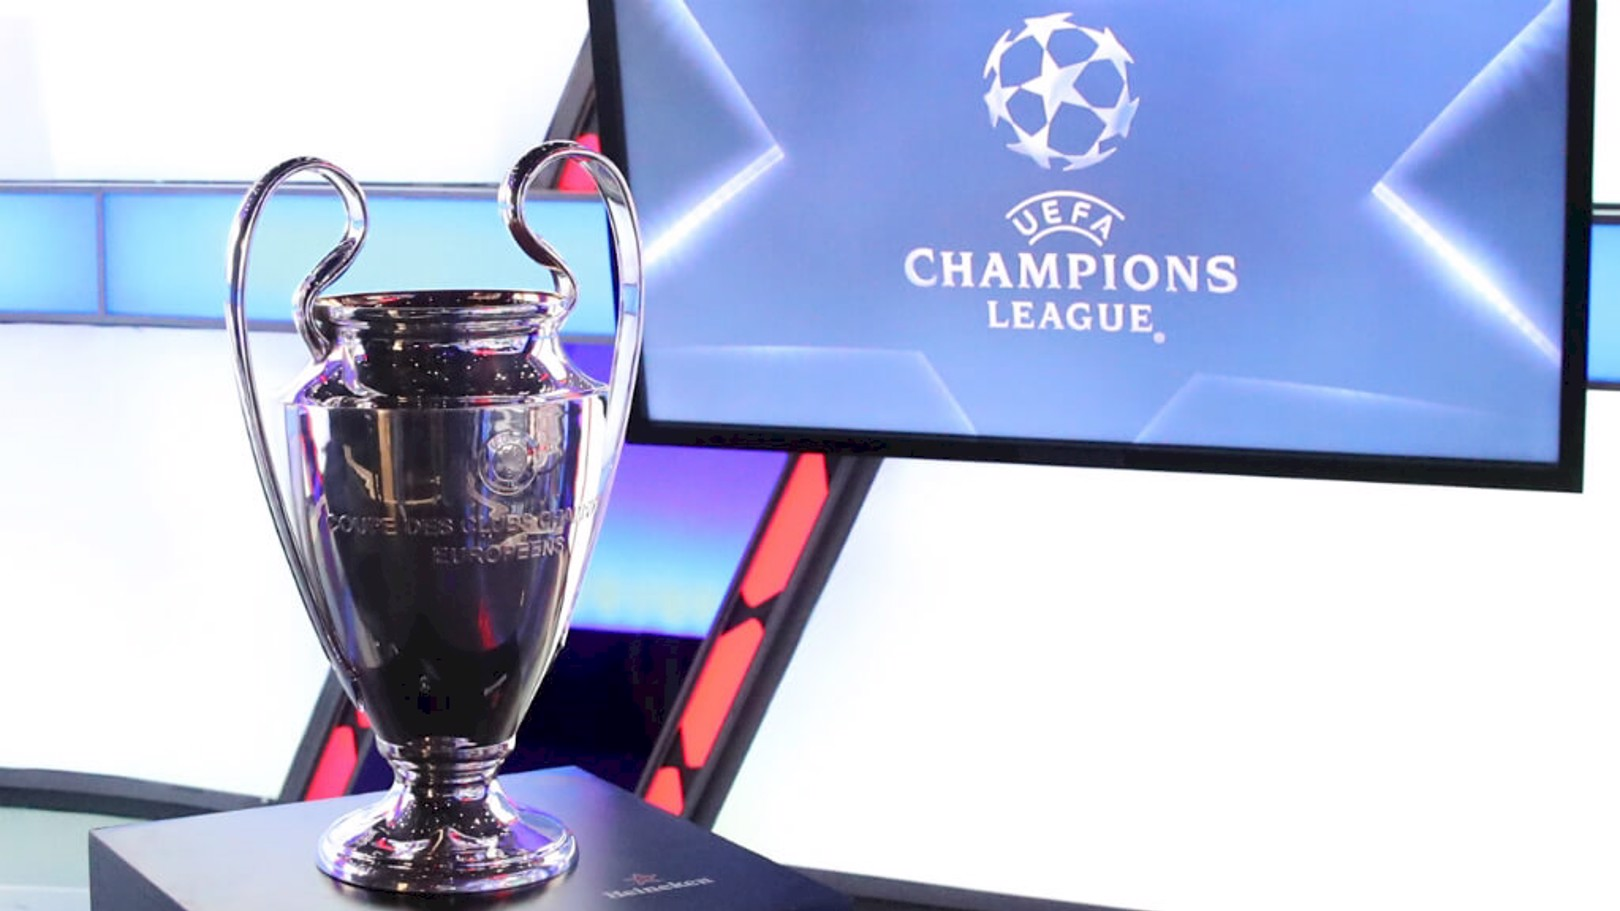 GROUP STAGE: City's Champions League group has been confirmed